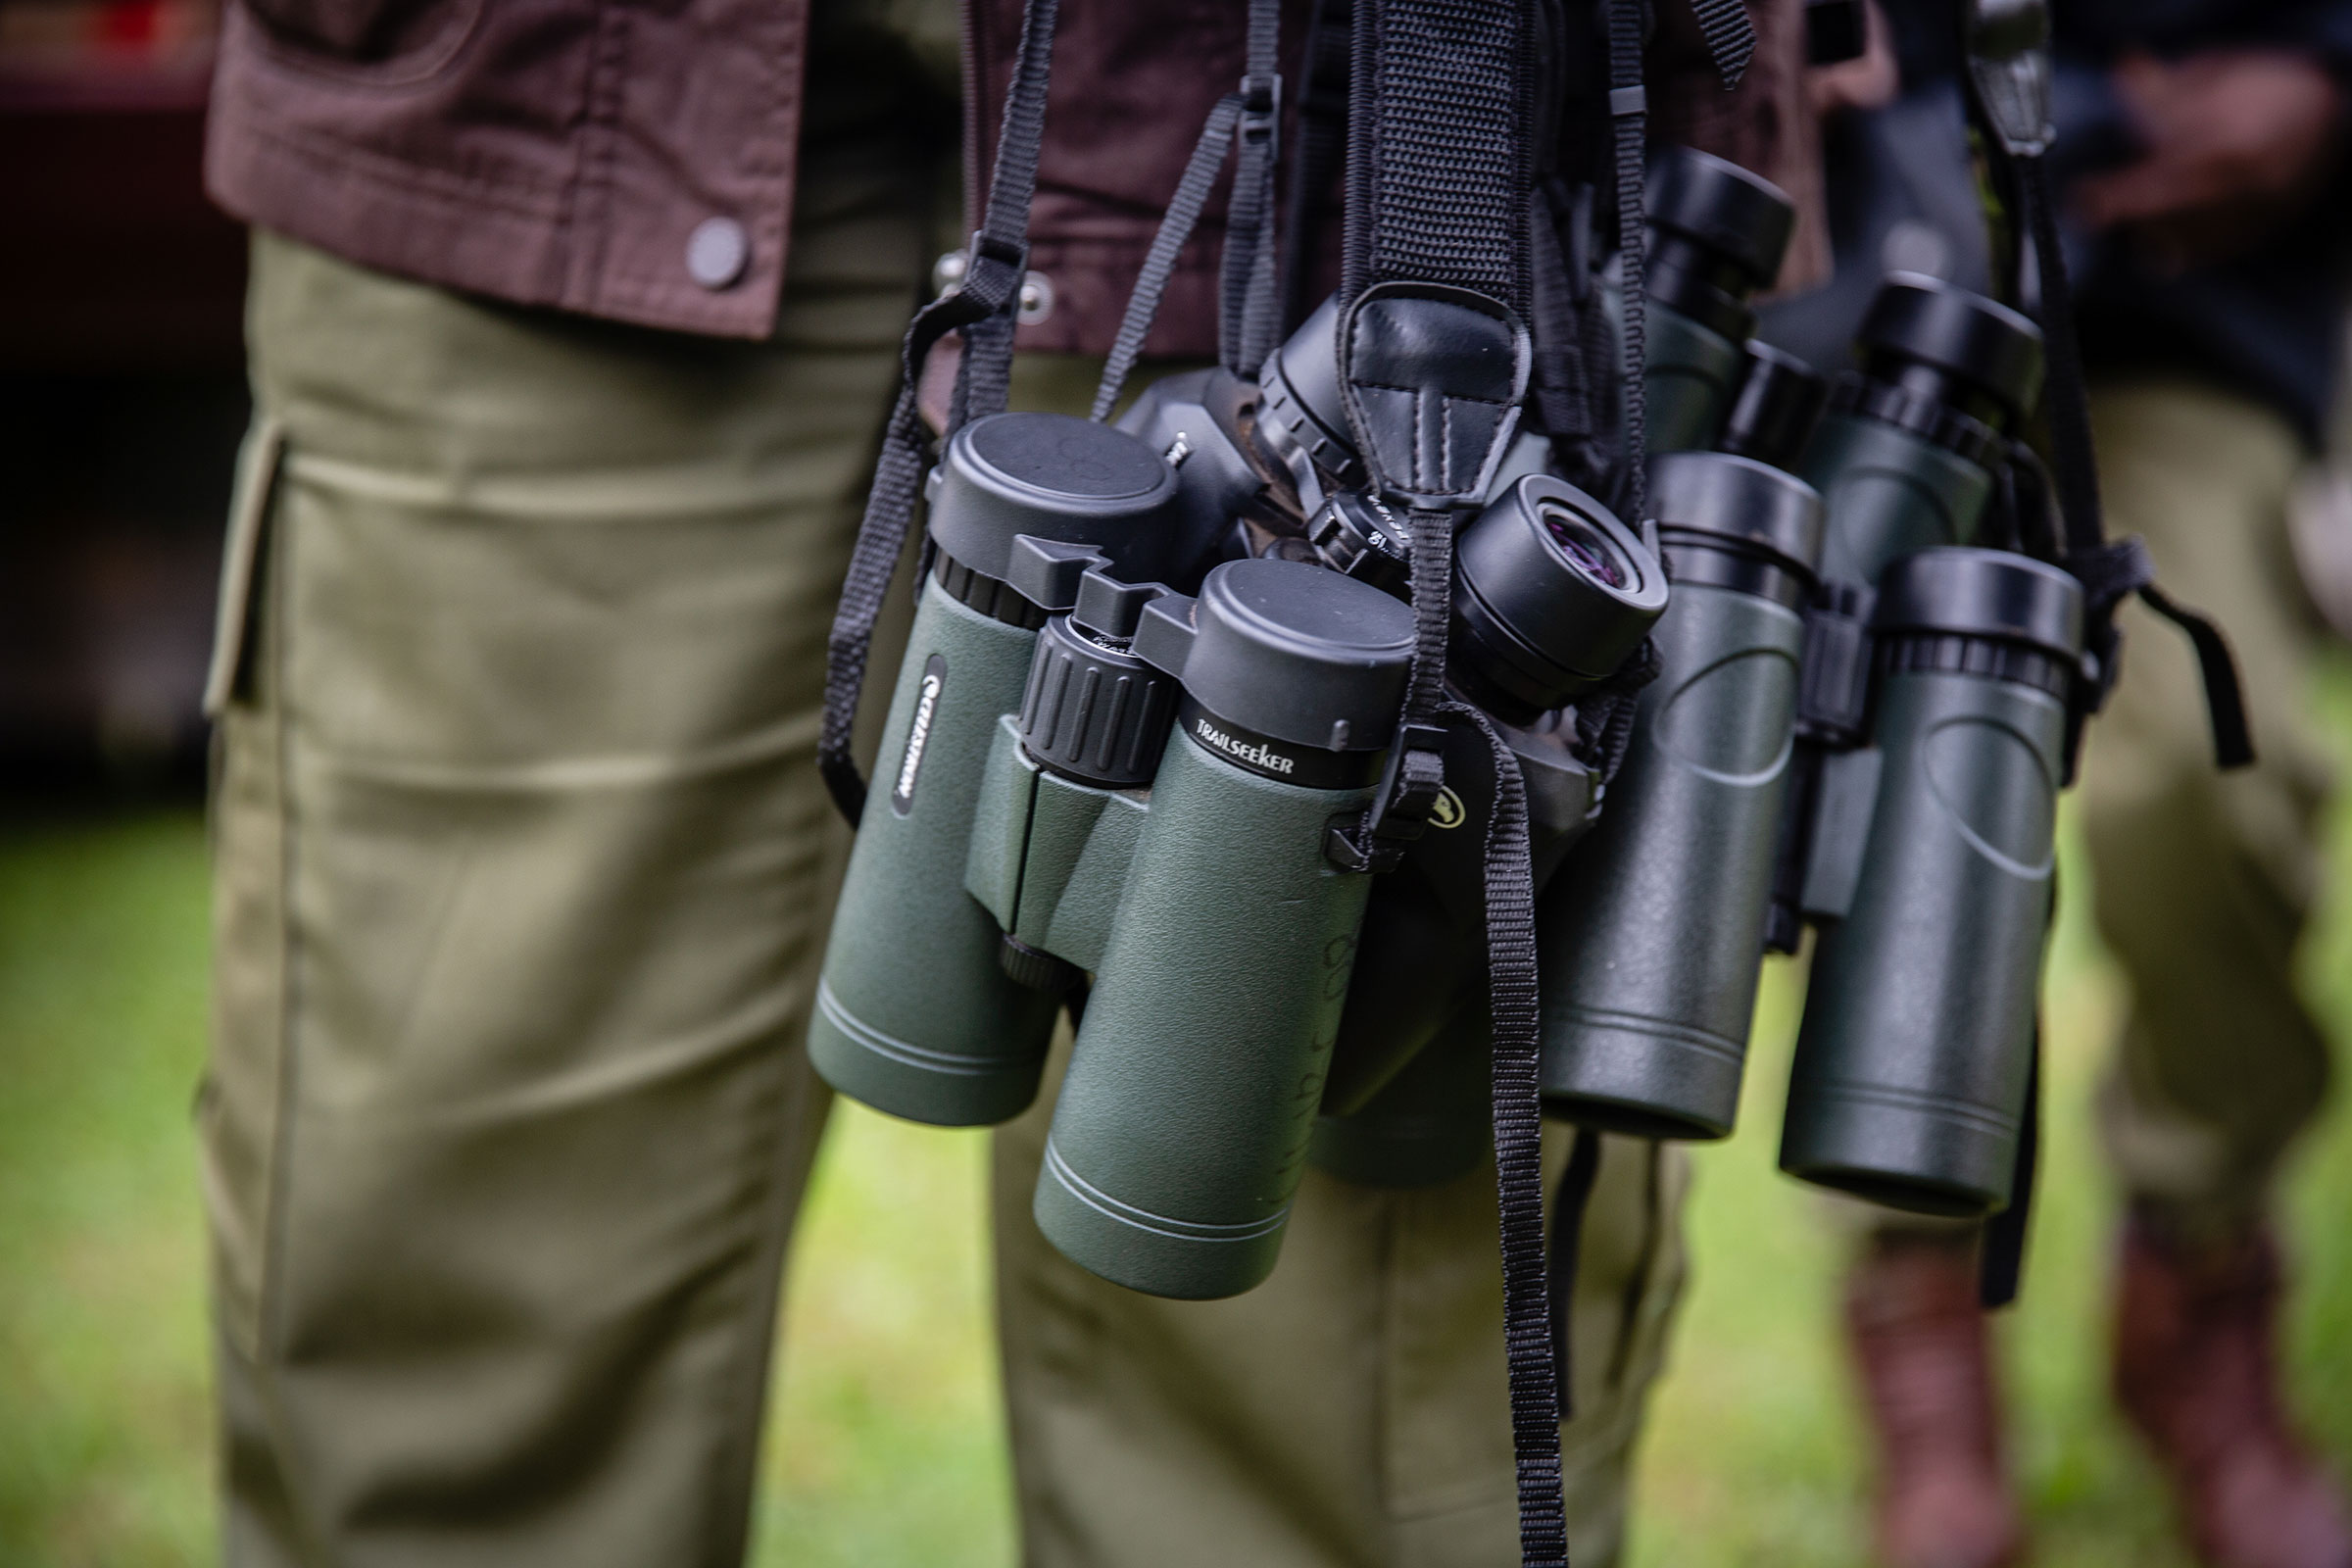 One of Mirembe's biggest challenges has been buying optics for her trainees. The Uganda Wildlife Authority recently donated 15 binoculars and field guides. Esther Ruth Mbabazi